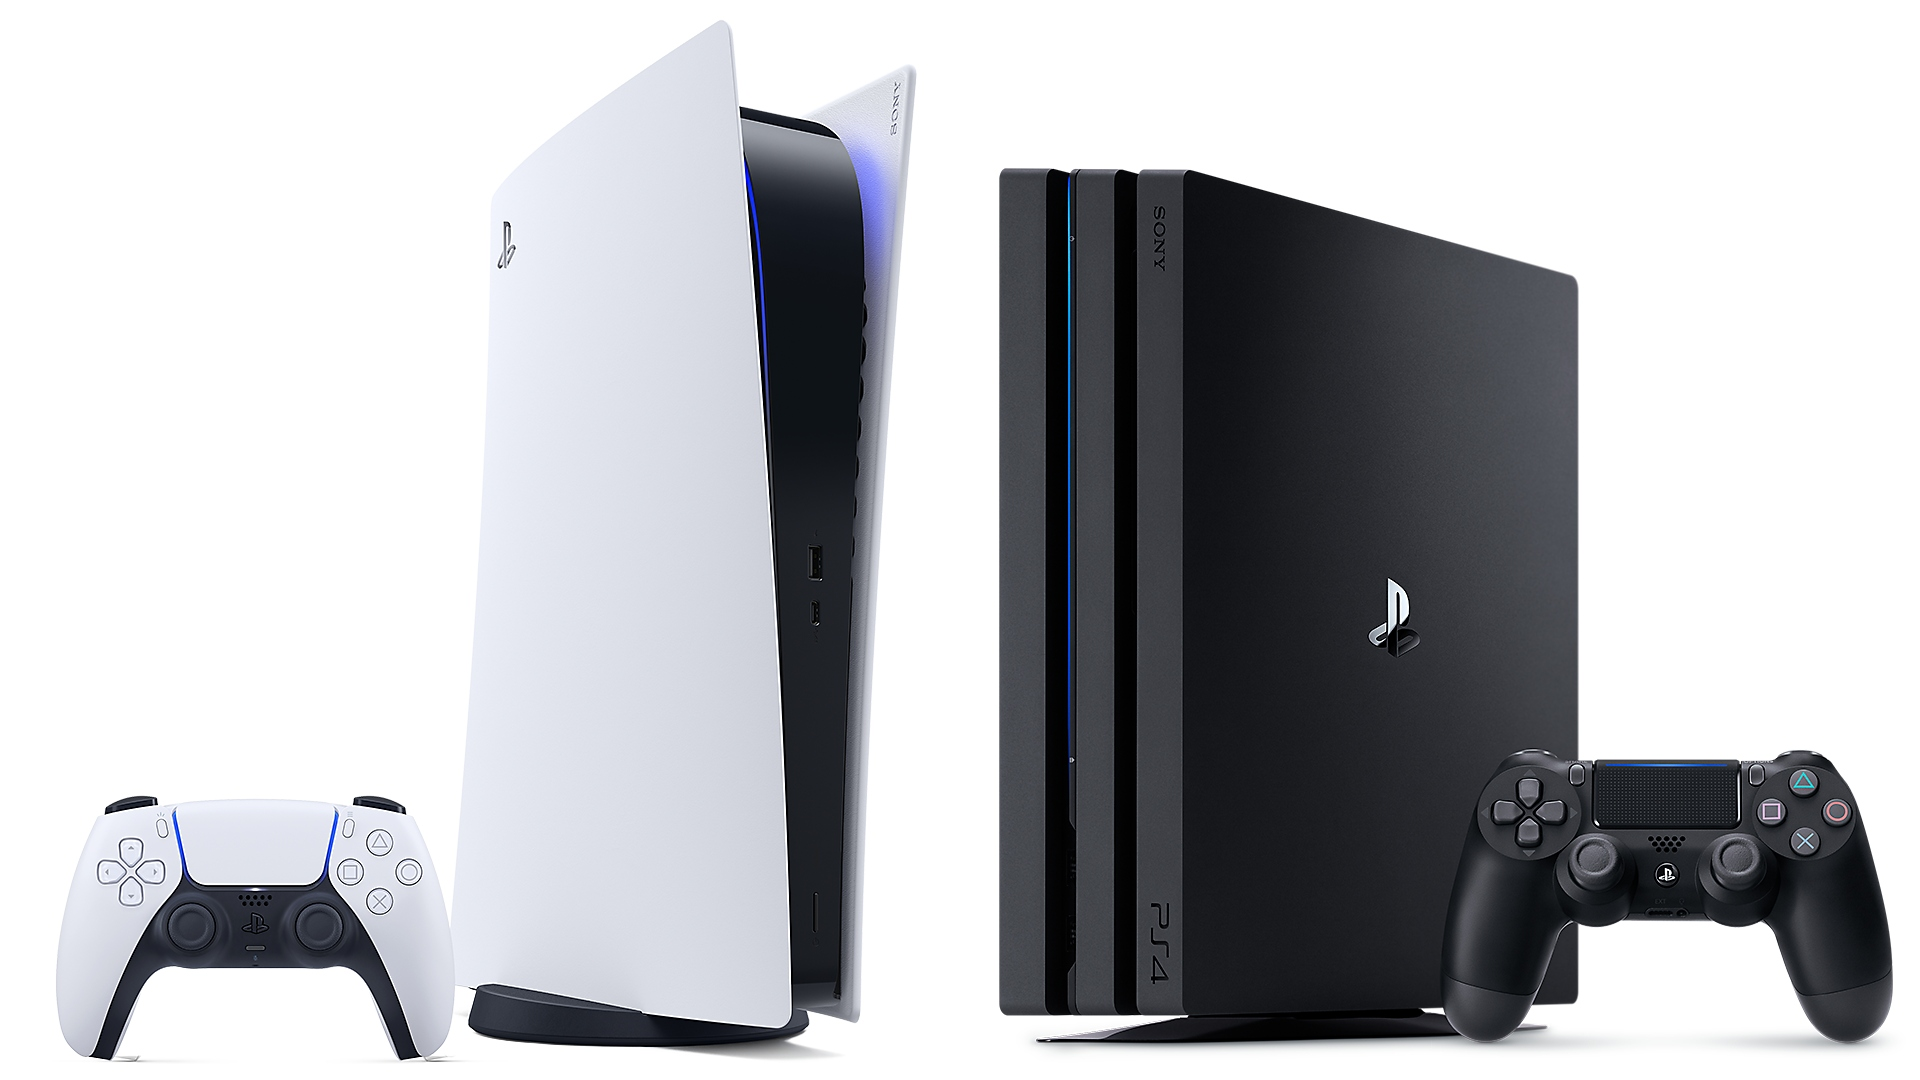 PS5 and PS4 Pro